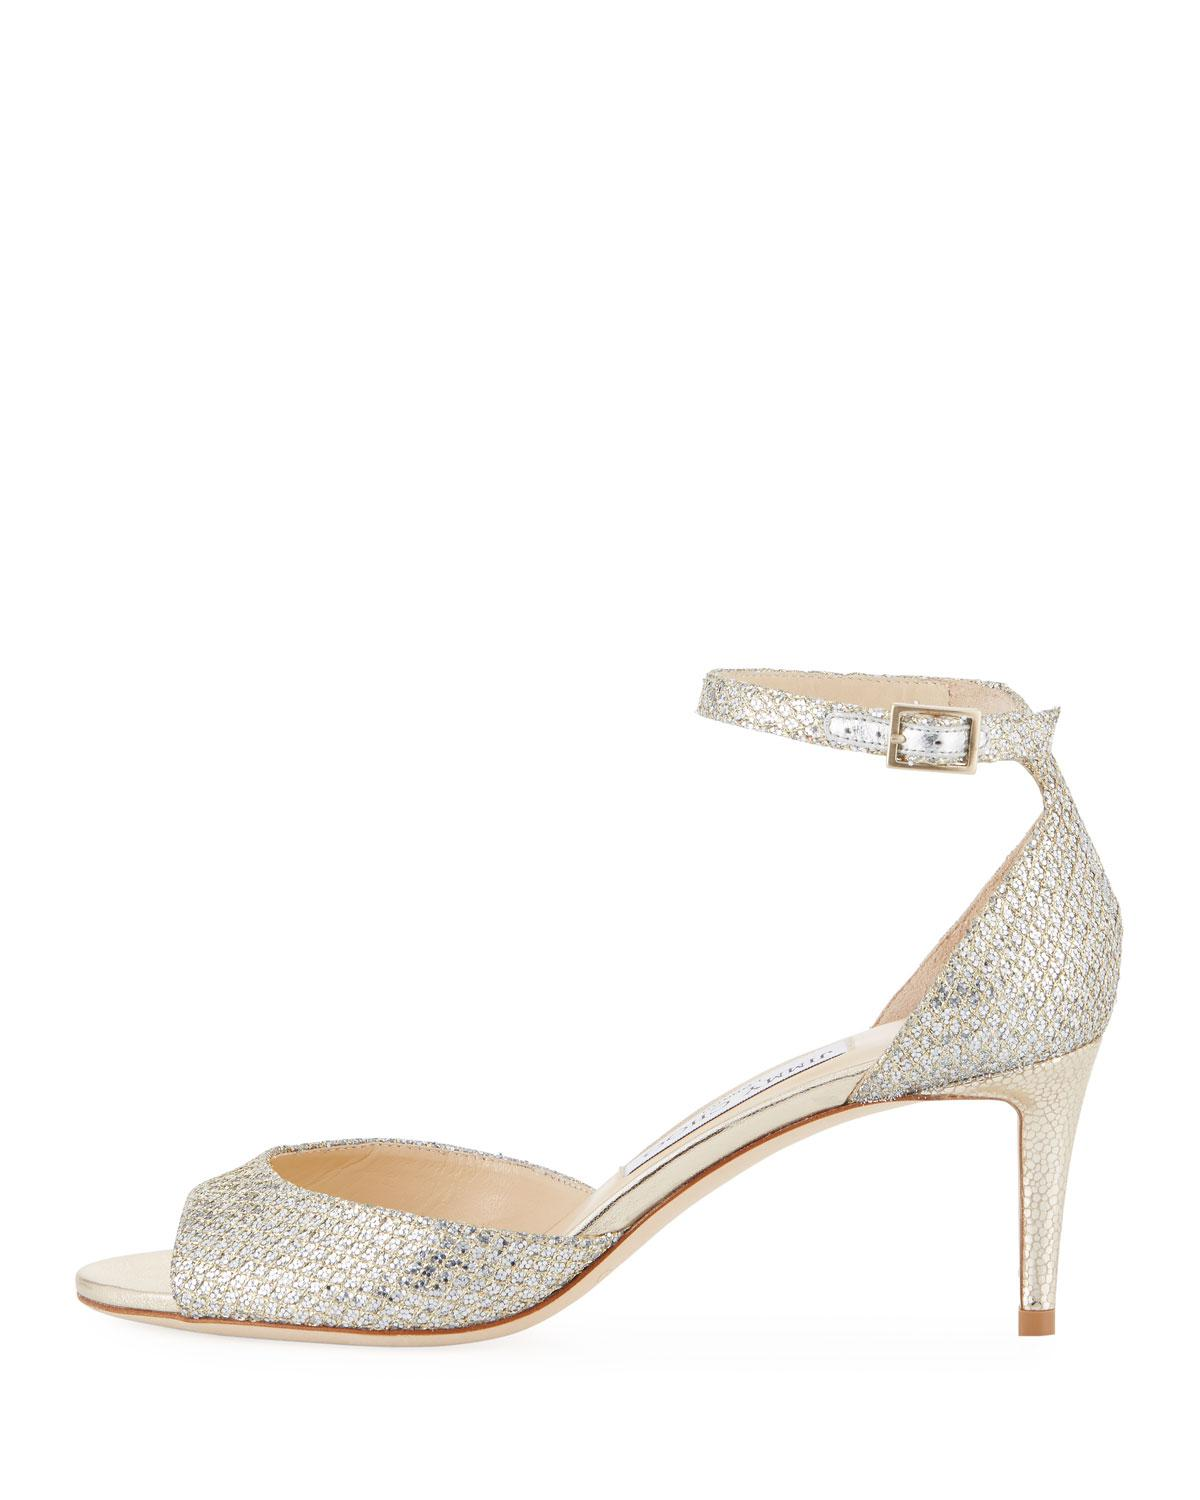 d390bf463a0 Gallery. Previously sold at  Bergdorf Goodman · Women s Jimmy Choo Glitter  ...